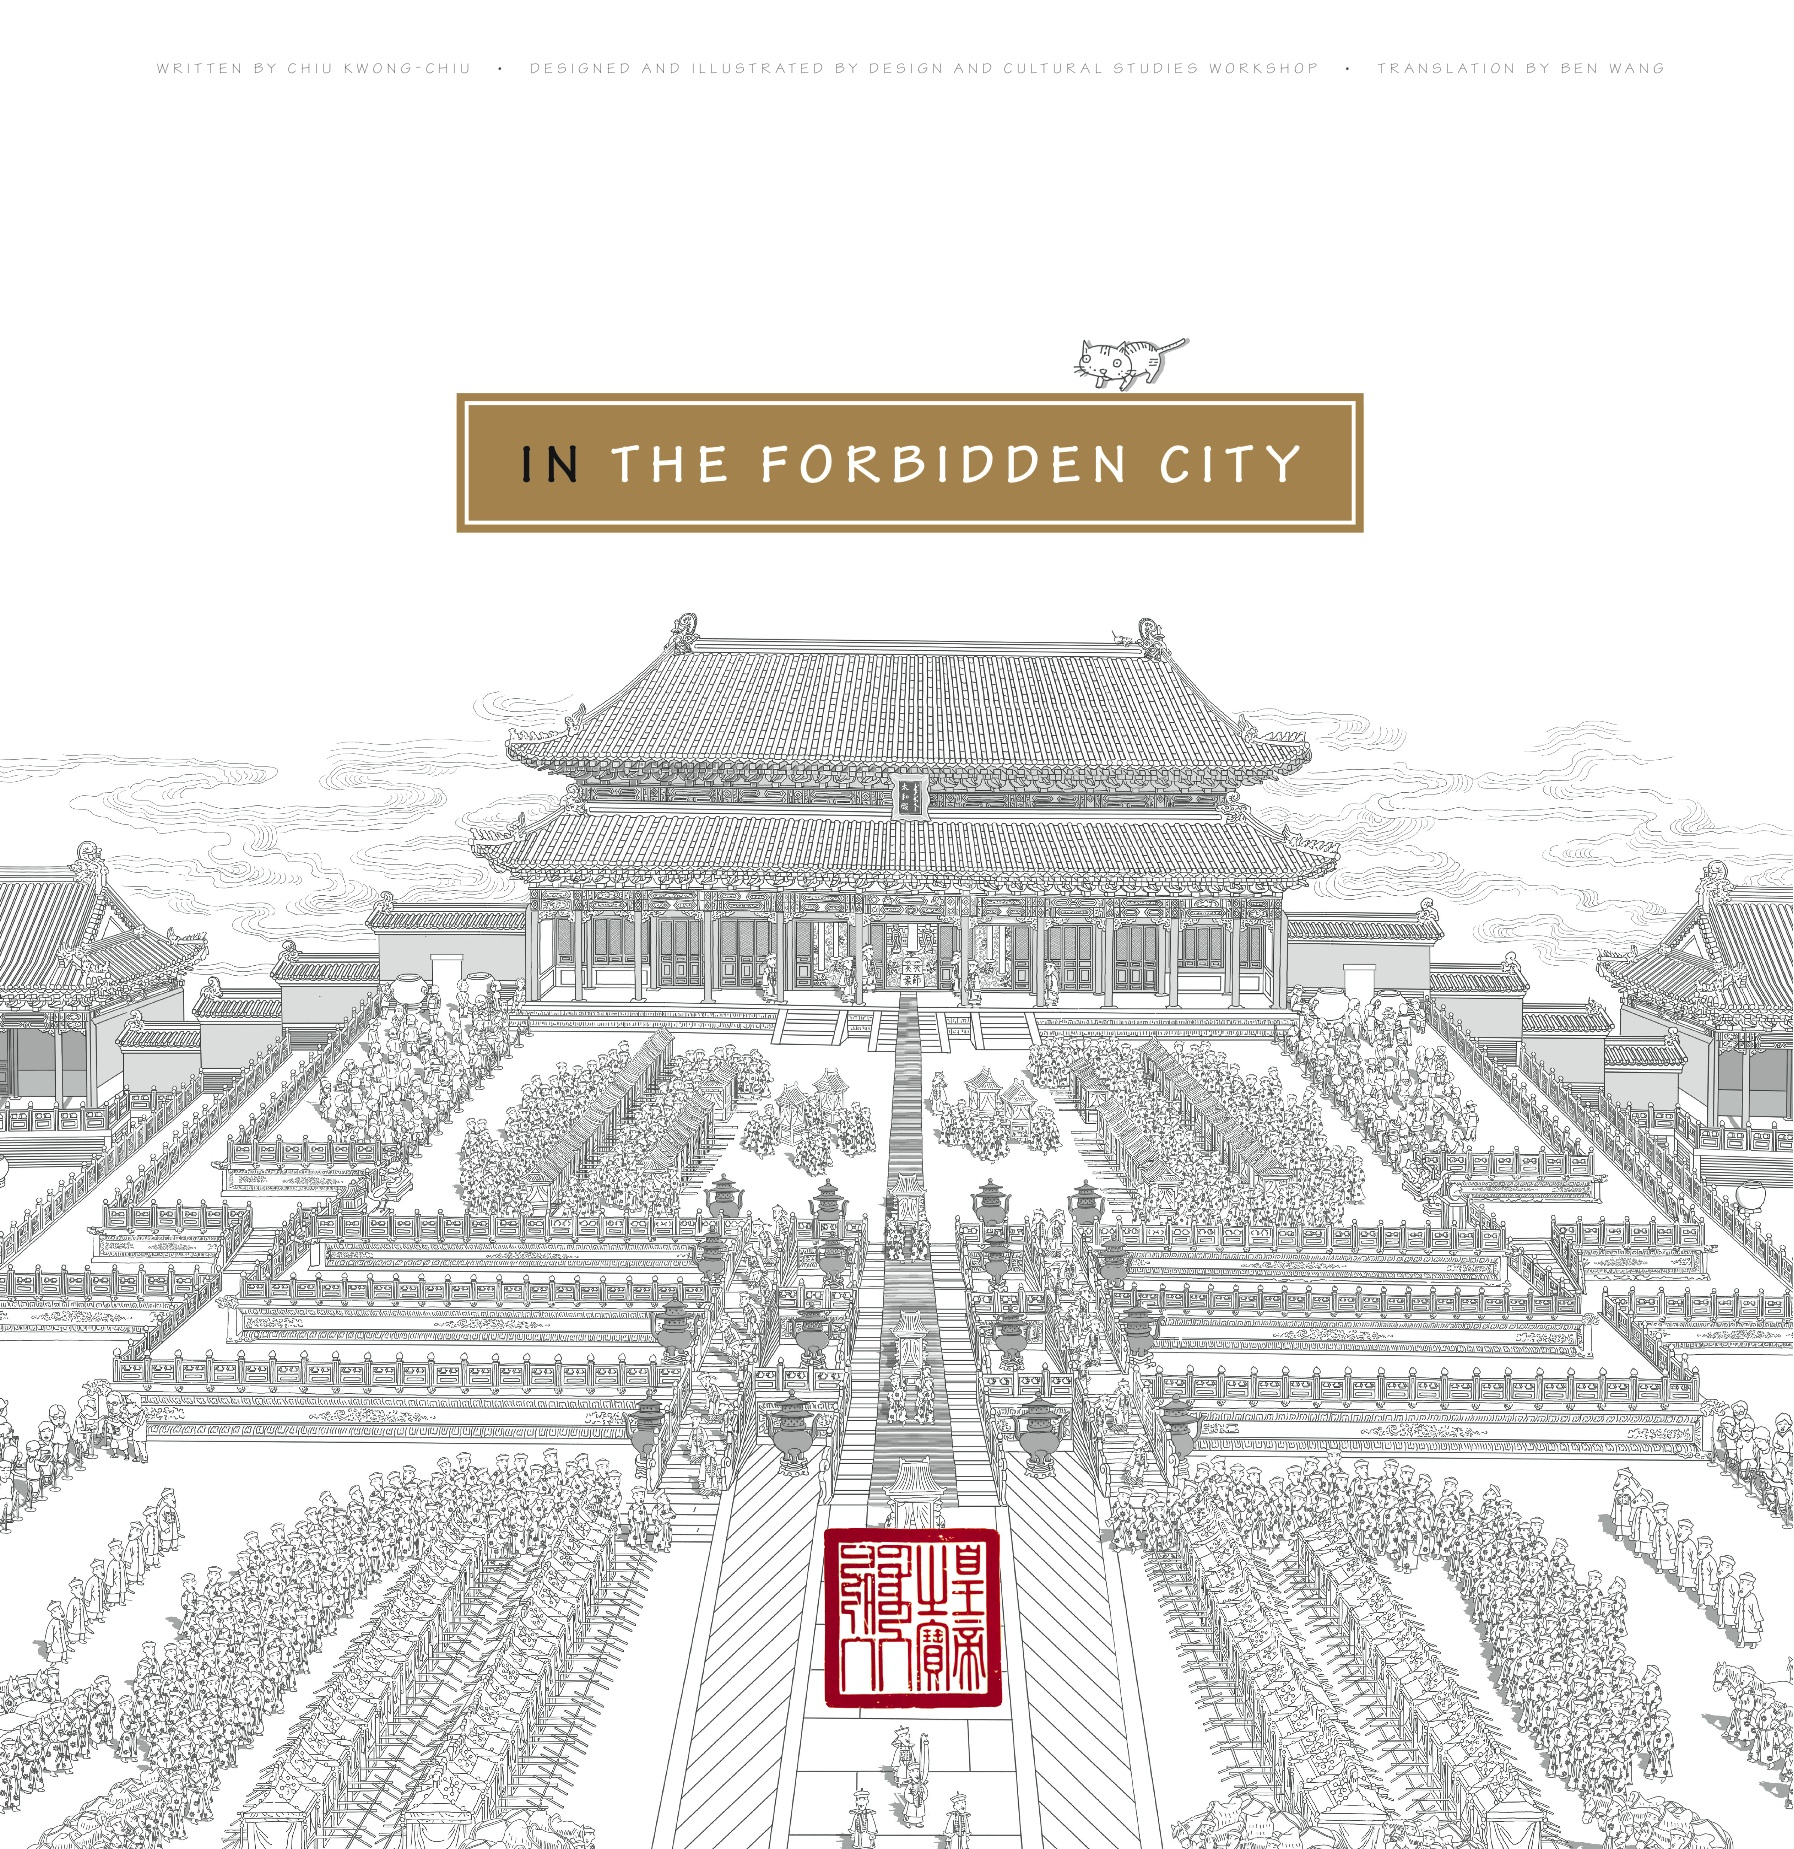 The Chef Of Yummiest Looking Batch Will Receive A Free Copy Their We All Live In Forbidden City Books Book Cover IN THE FORBIDDEN CITY